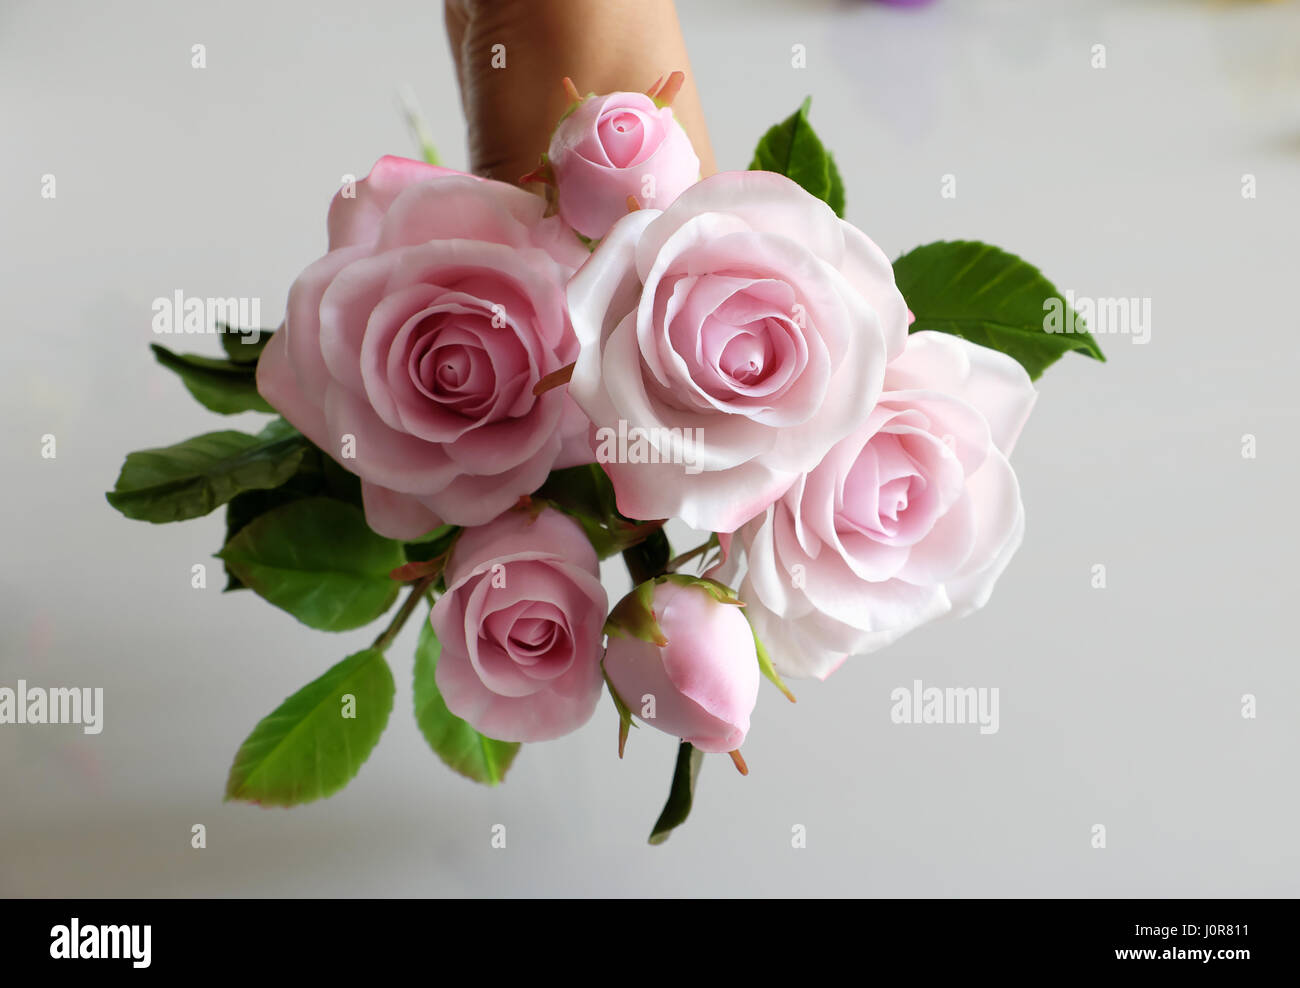 Wonderful clay art woman hand hold bouquet of roses flower in pink wonderful clay art woman hand hold bouquet of roses flower in pink on white background beautiful artificial flowers of craftsmanship with skillful izmirmasajfo